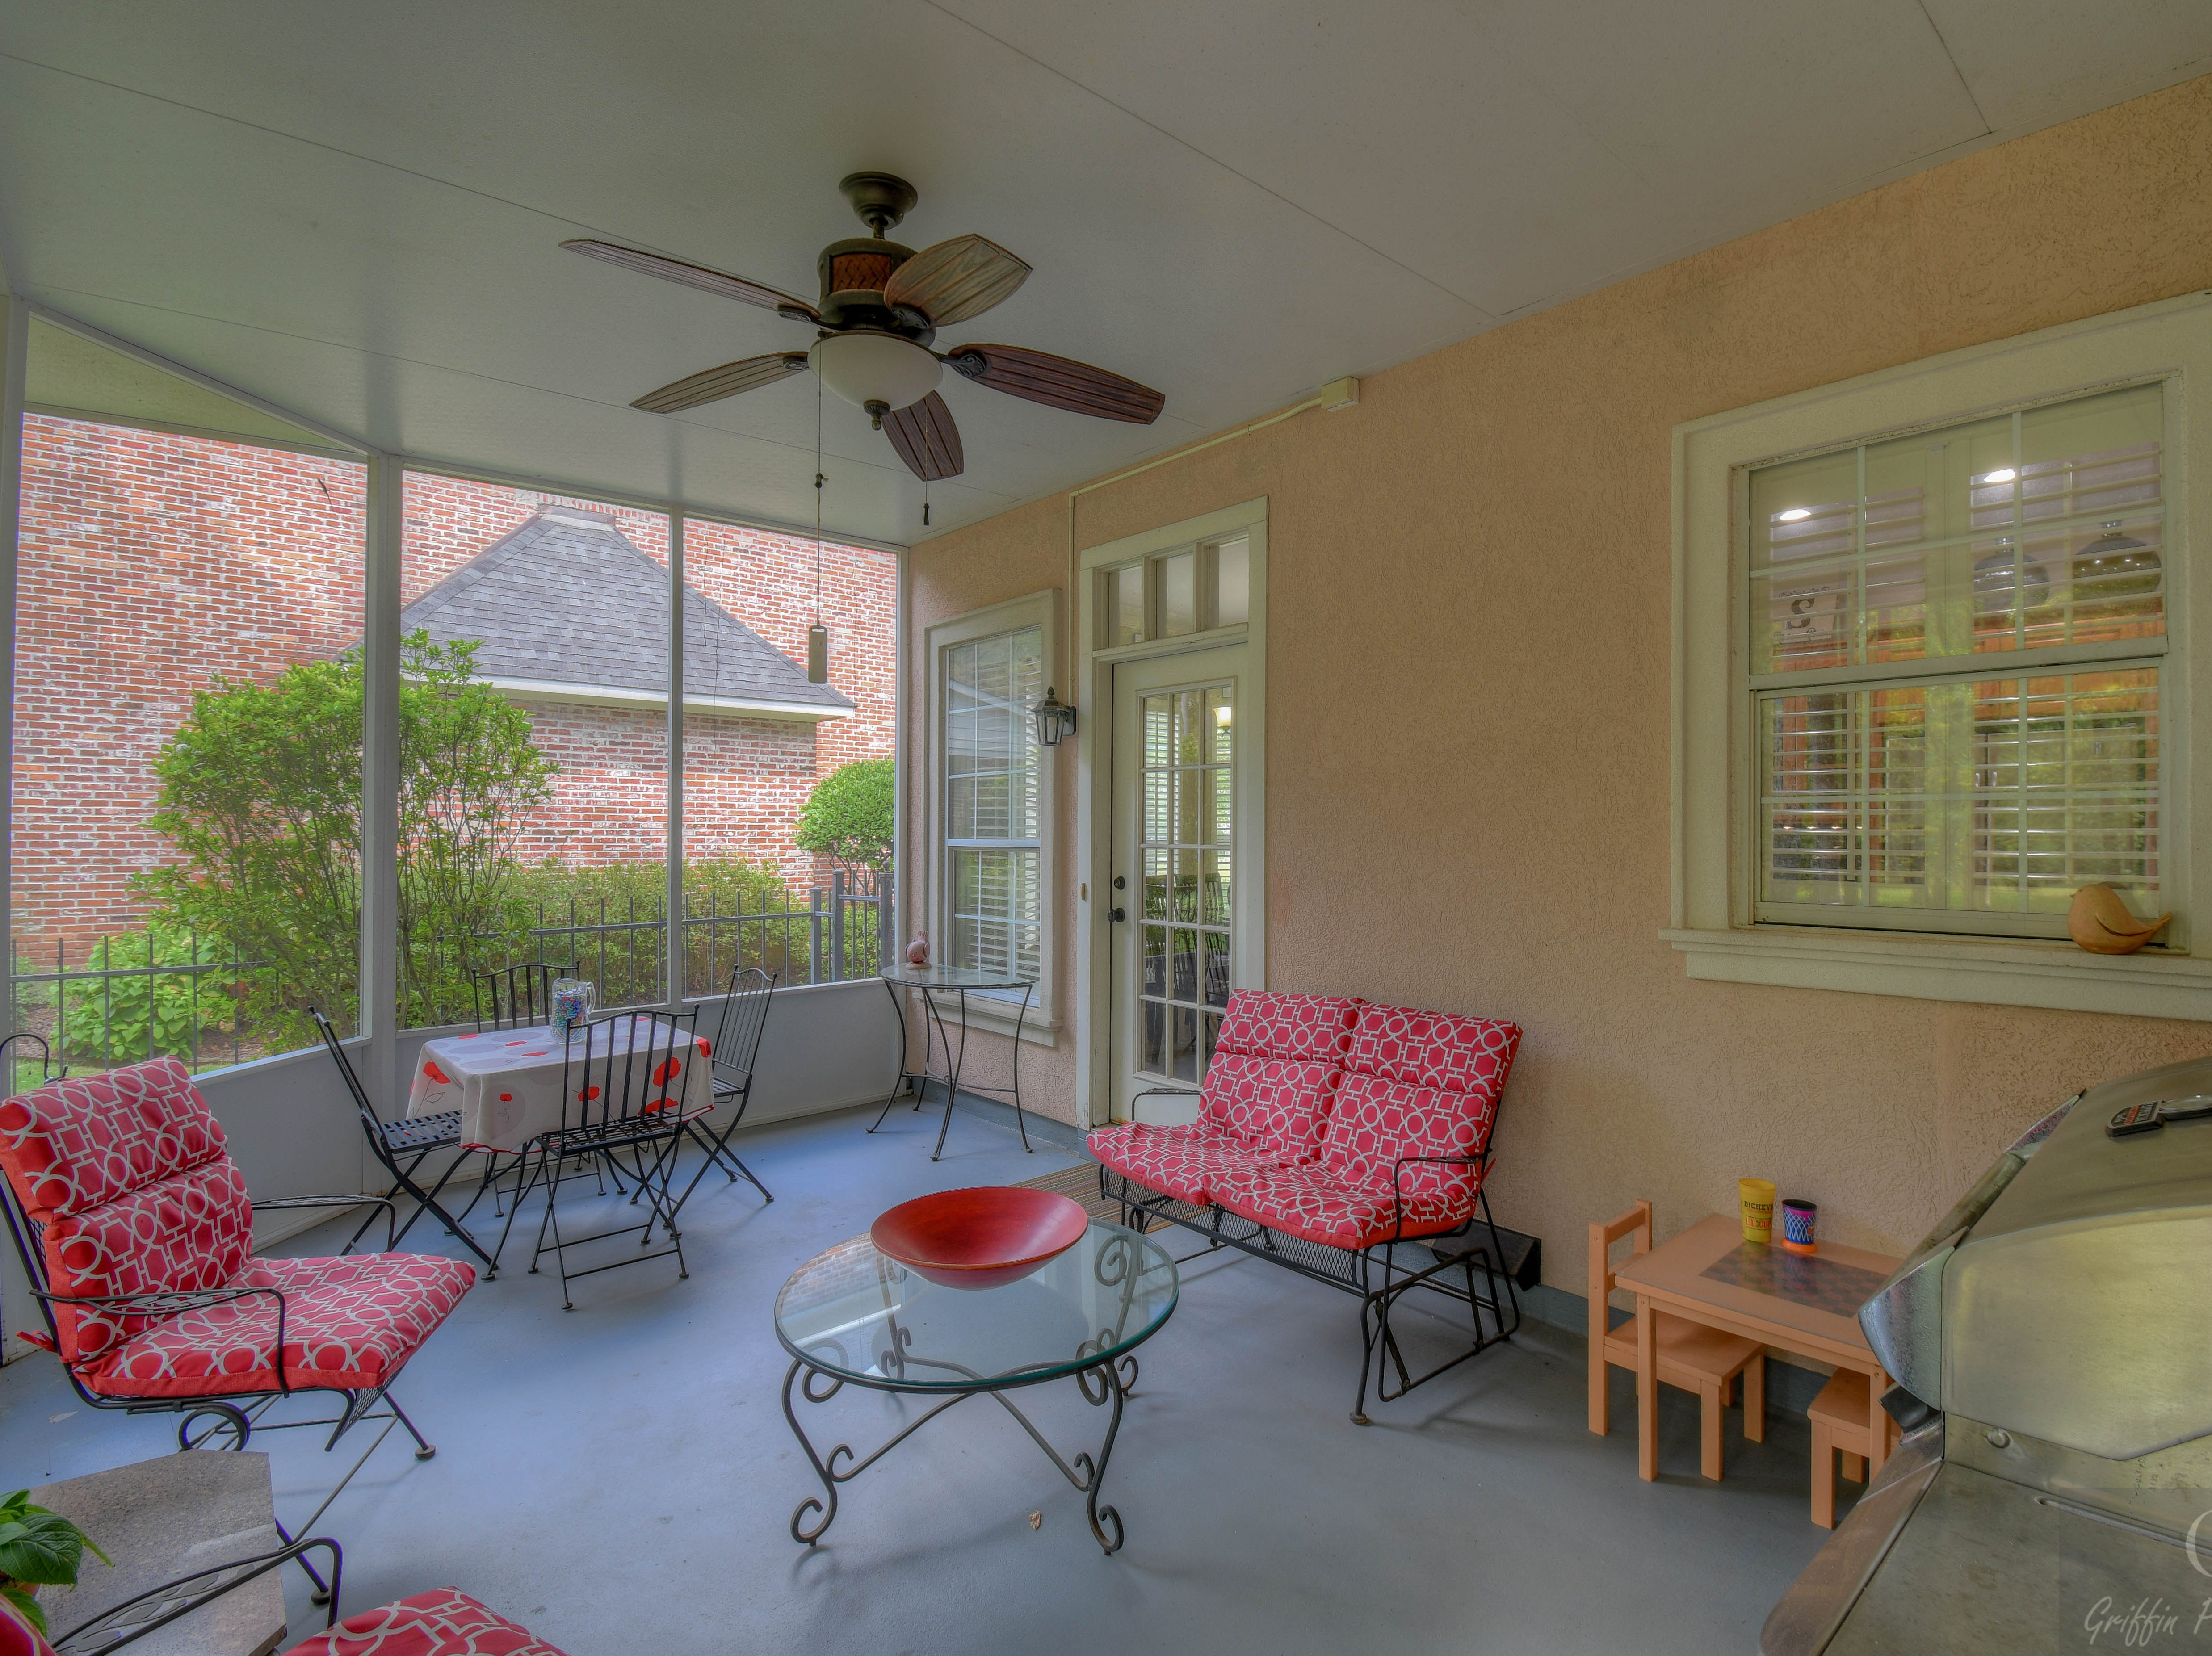 47 Victorias Drive,   Bossier City  Price: $364,900  Details: 4 bedrooms, 3 bathrooms, 2,800 square feet  Special features: Elegant Victorian Pointe home in gated community with designer touches, screened back porch to enjoy secluded woods year round.  Contact: Chris Hayes,   773-4663